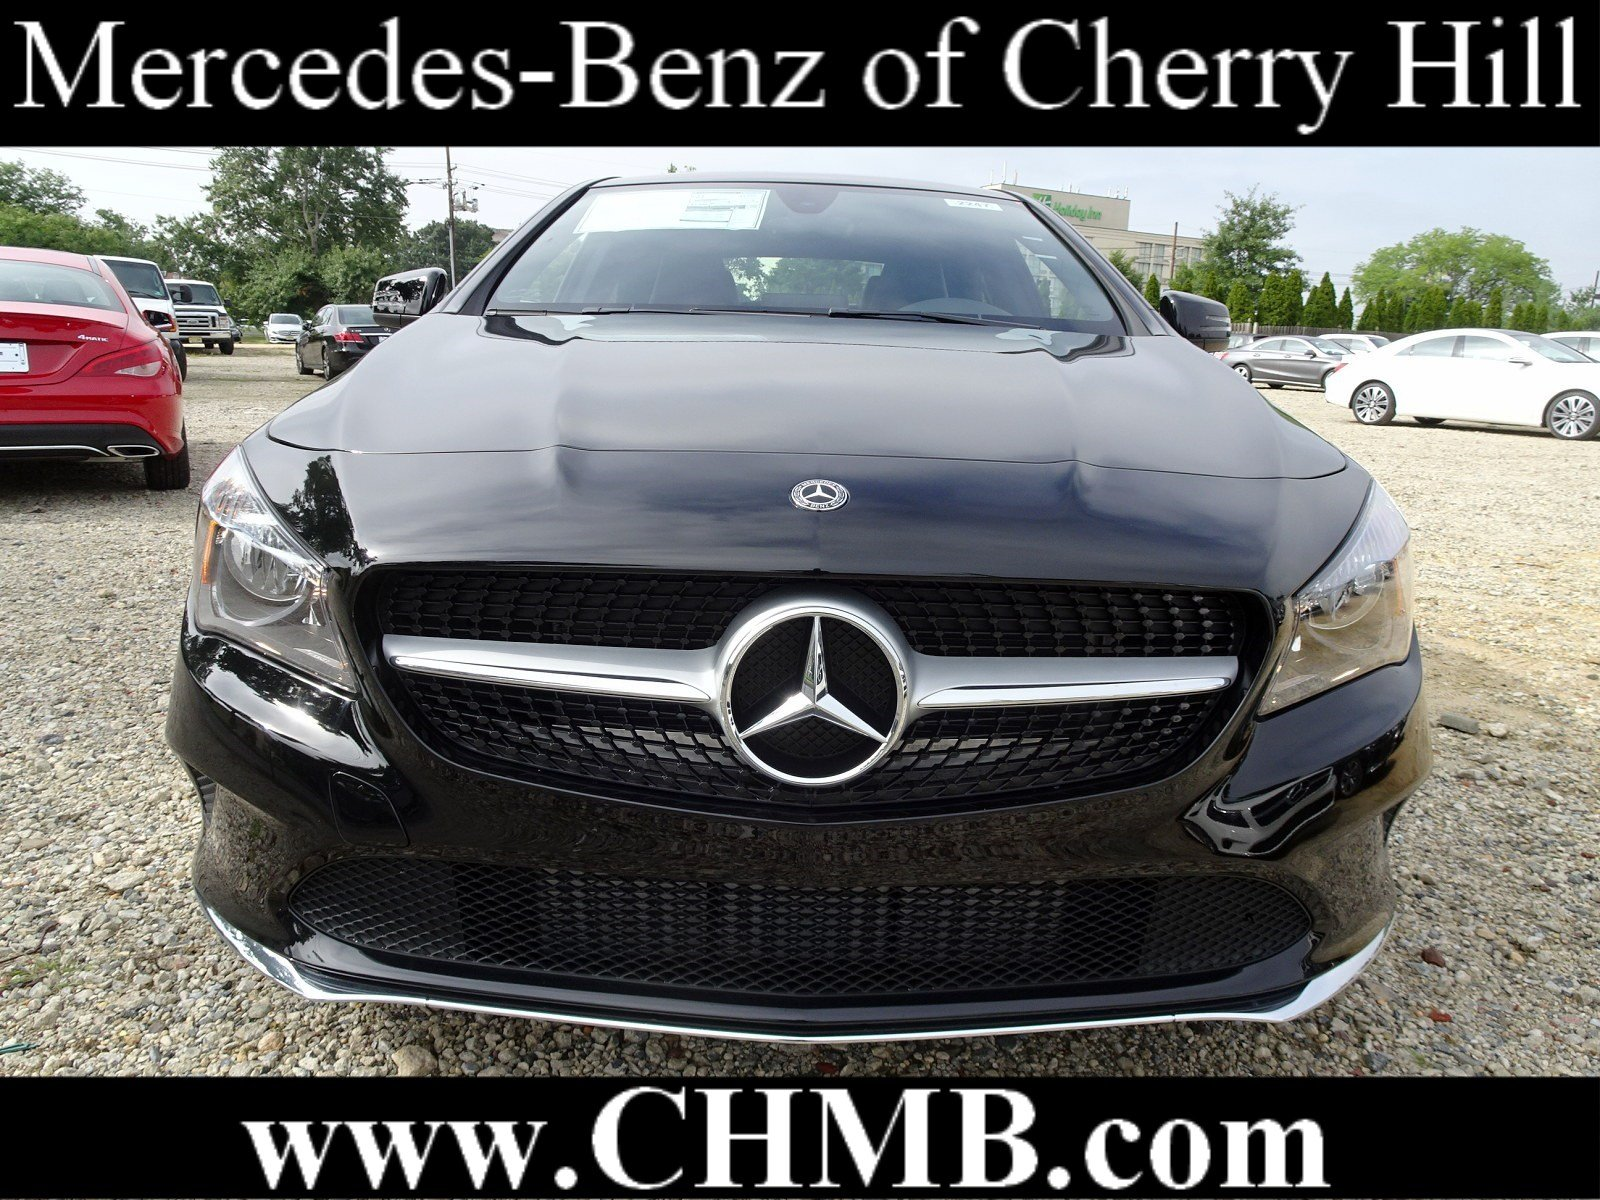 New 2019 Mercedes Benz CLA CLA 250 Coupe in Cherry Hill M2247